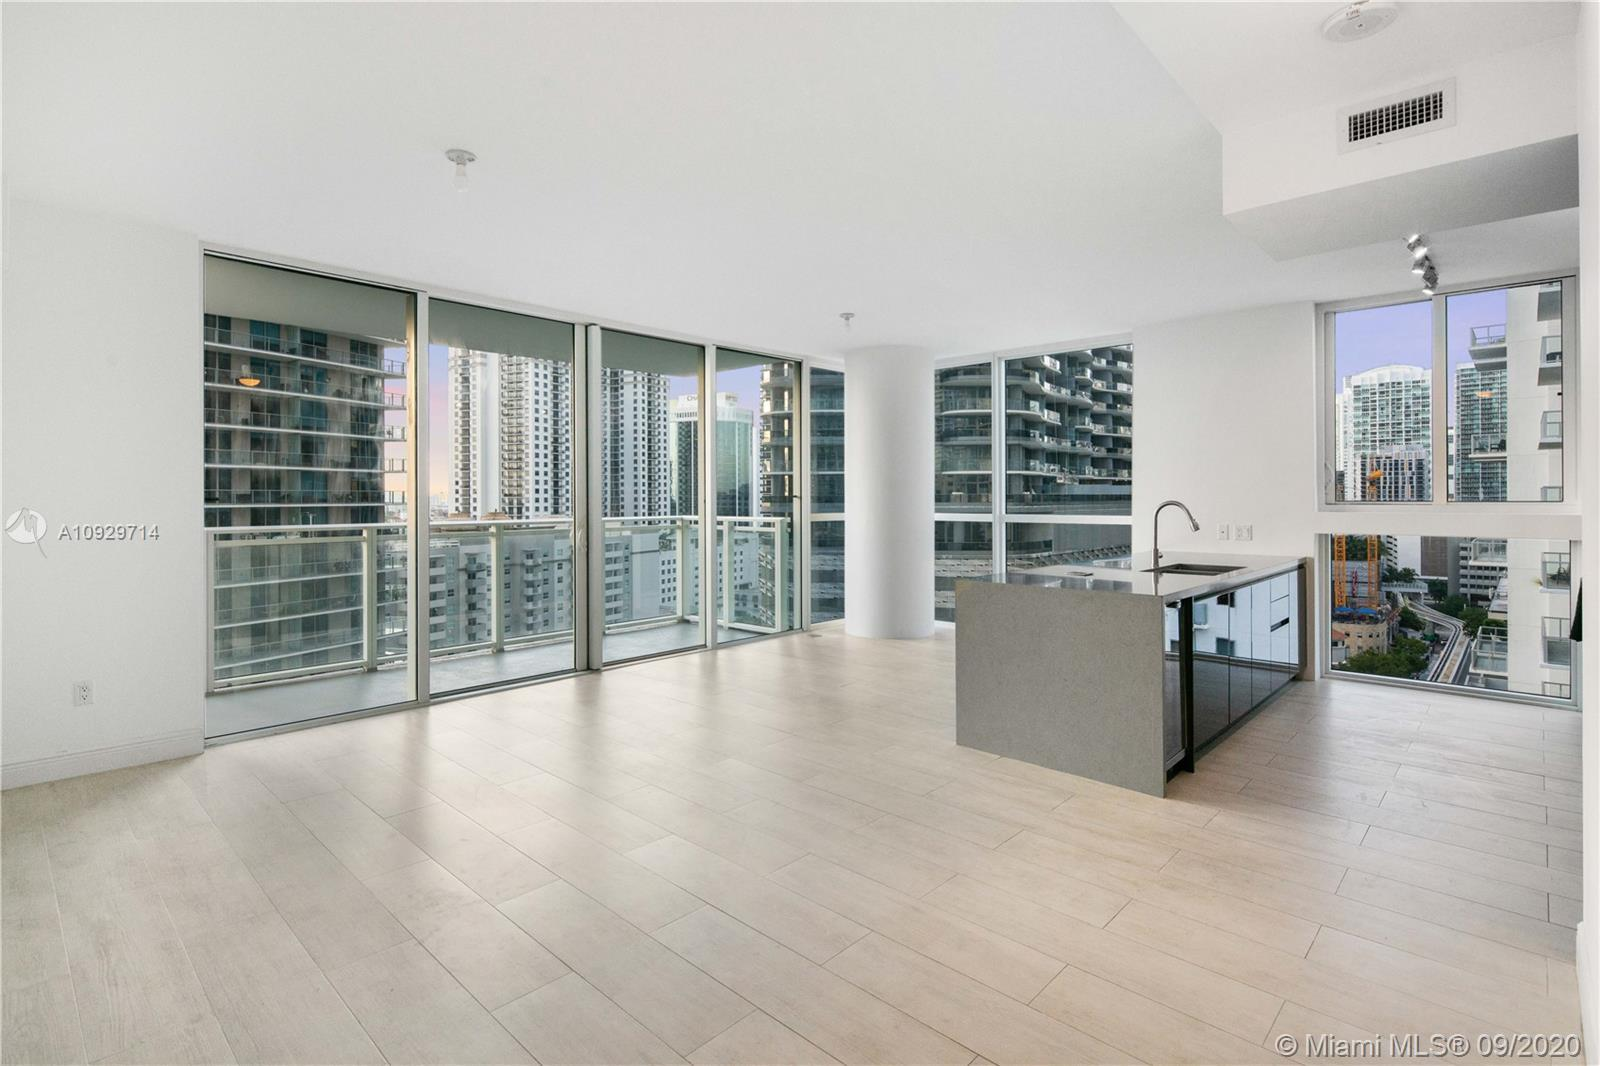 For Sale at The Bond in Brickell. 2BR/2BA corner unit at The Bond in Brickell. The condo features a